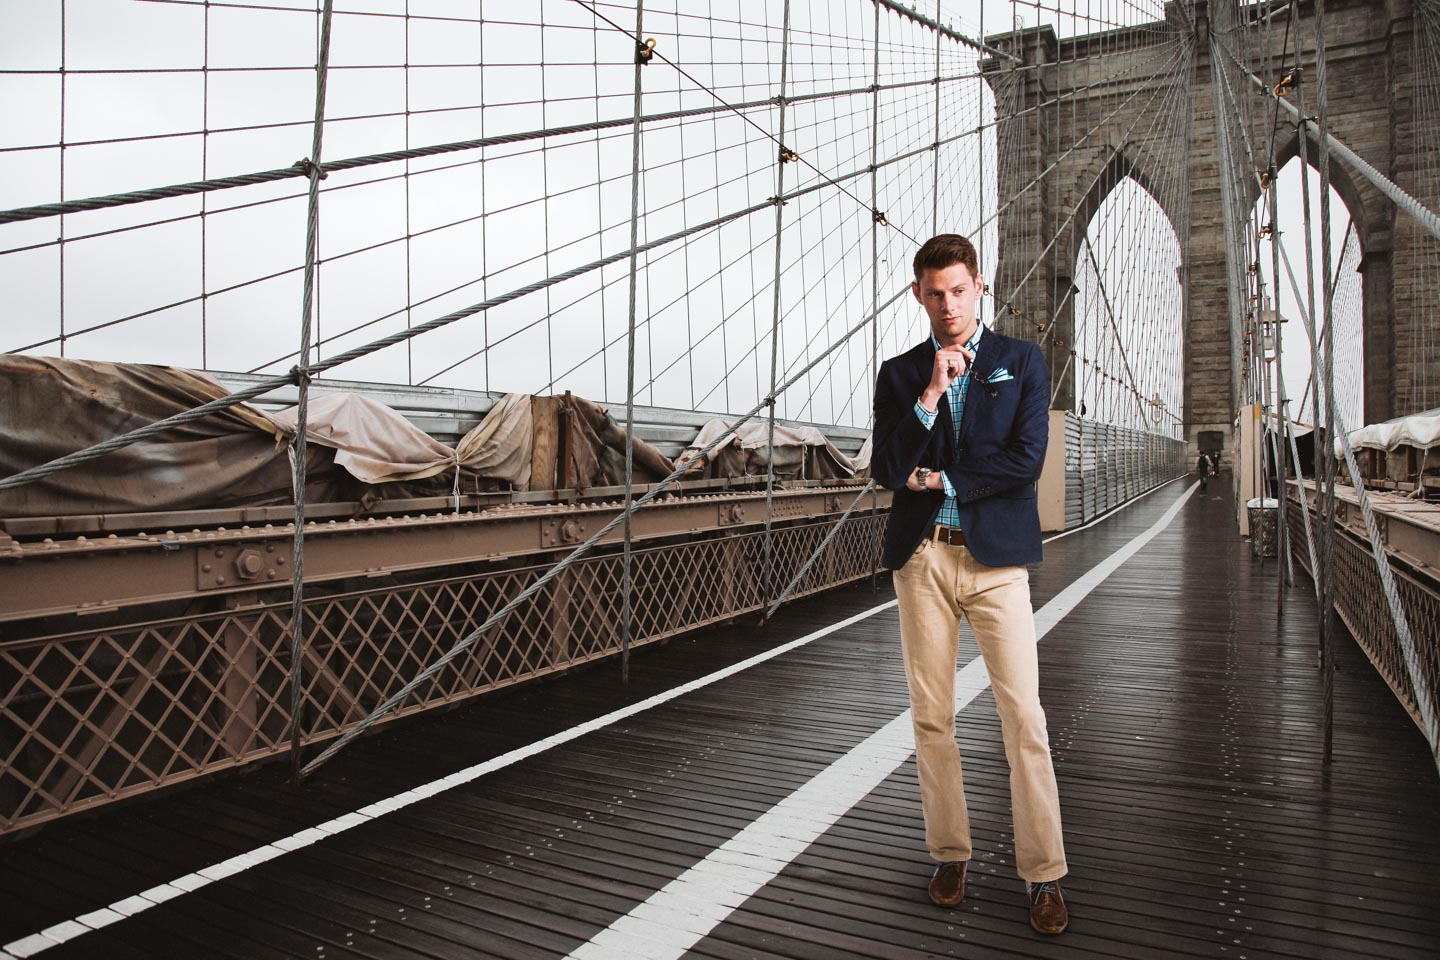 Hunter on the Brooklyn Bridge